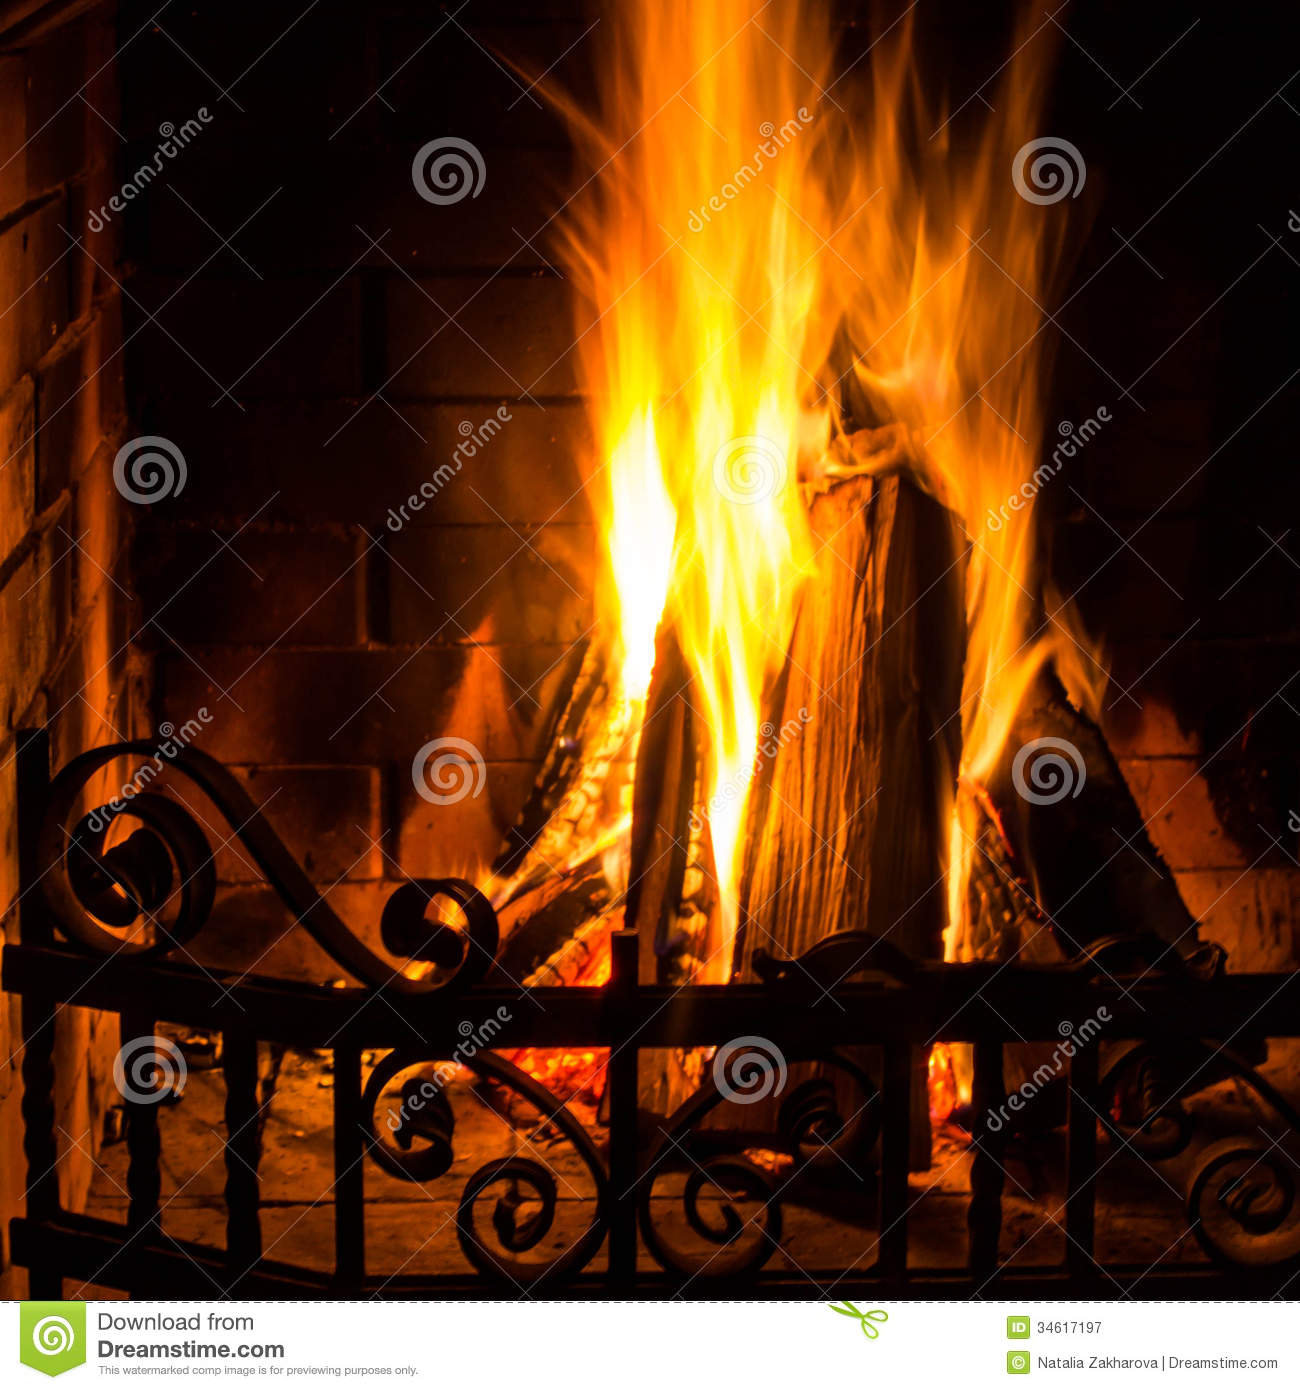 Dining Room Fireplace Ideas For Romantic Winter Nights: Home Fire Burning In Brick Fireplace. Seasonal And Holiday